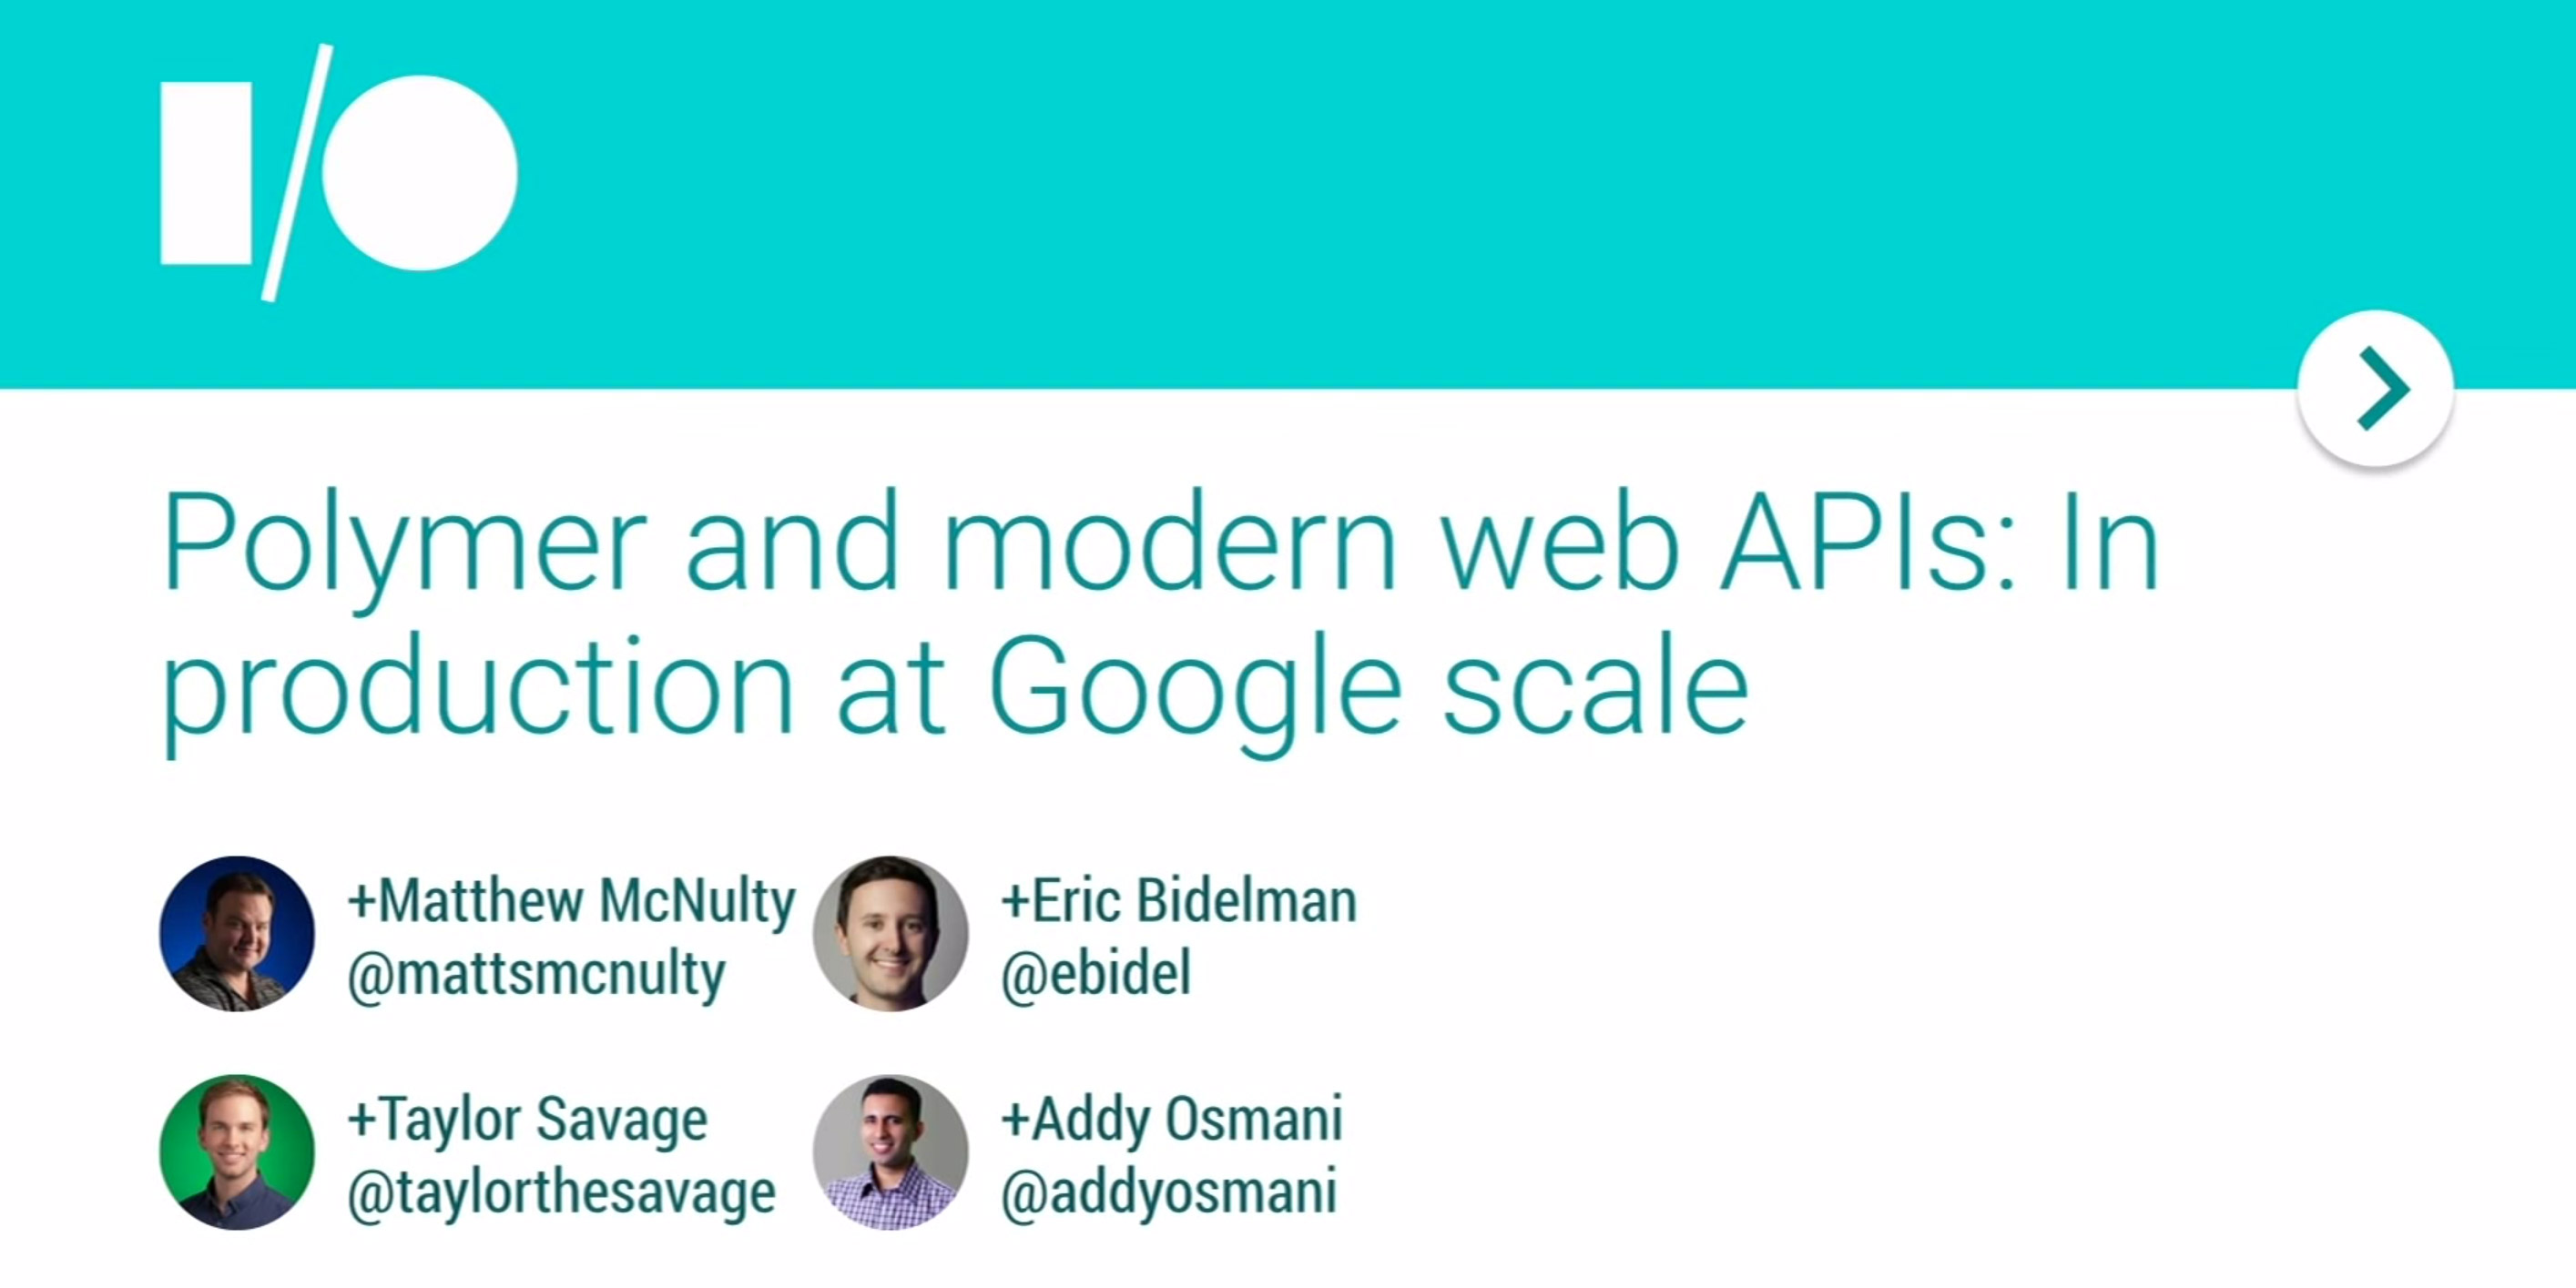 Polymer and modern web APIs: In production at Google scale